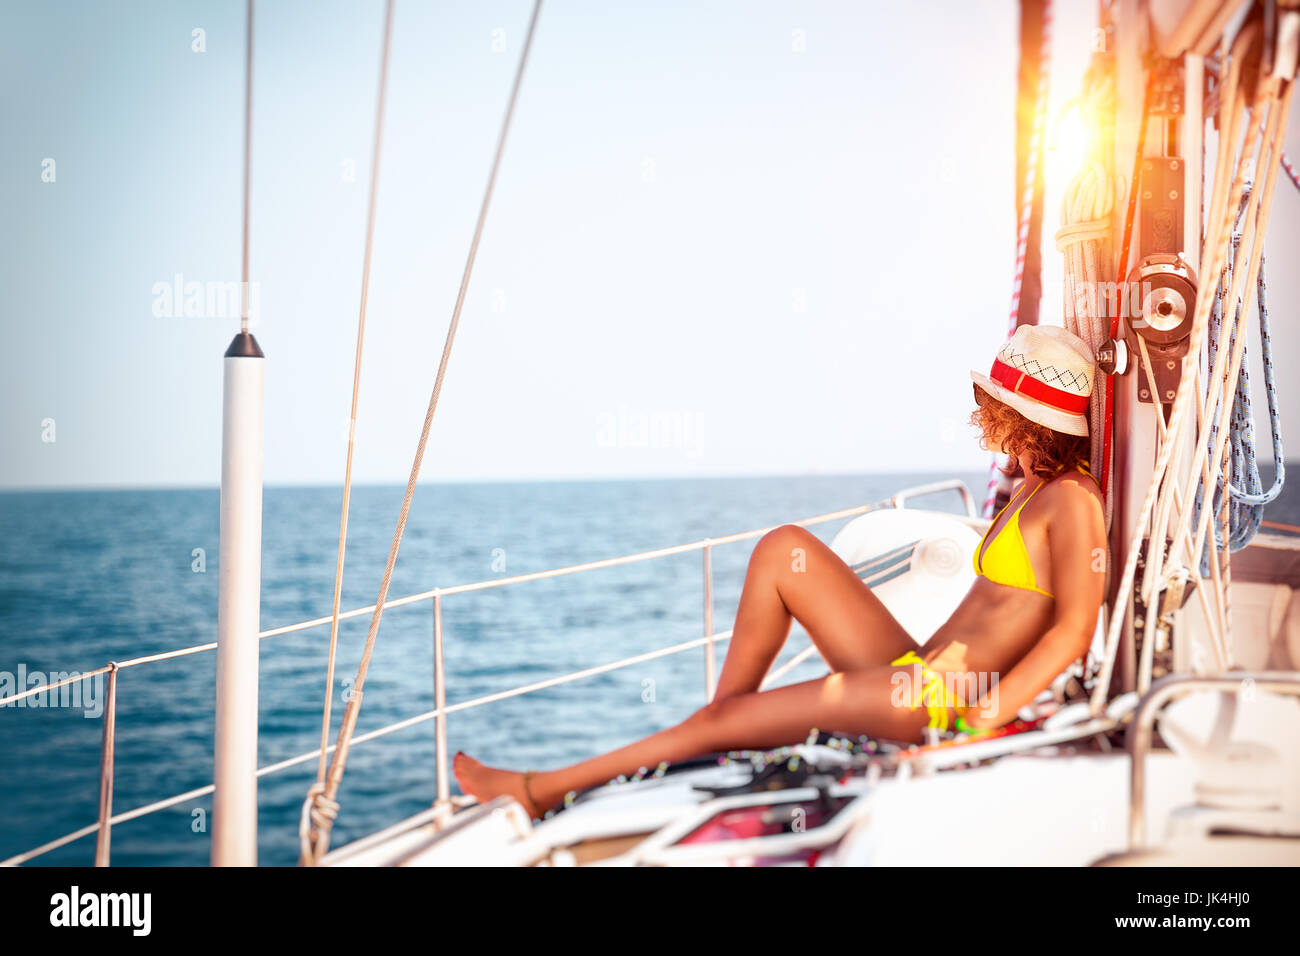 Woman relaxing on sailboat, slim model tanning on the deck of the yacht in bright sunny day, enjoying sailing adventures, - Stock Image